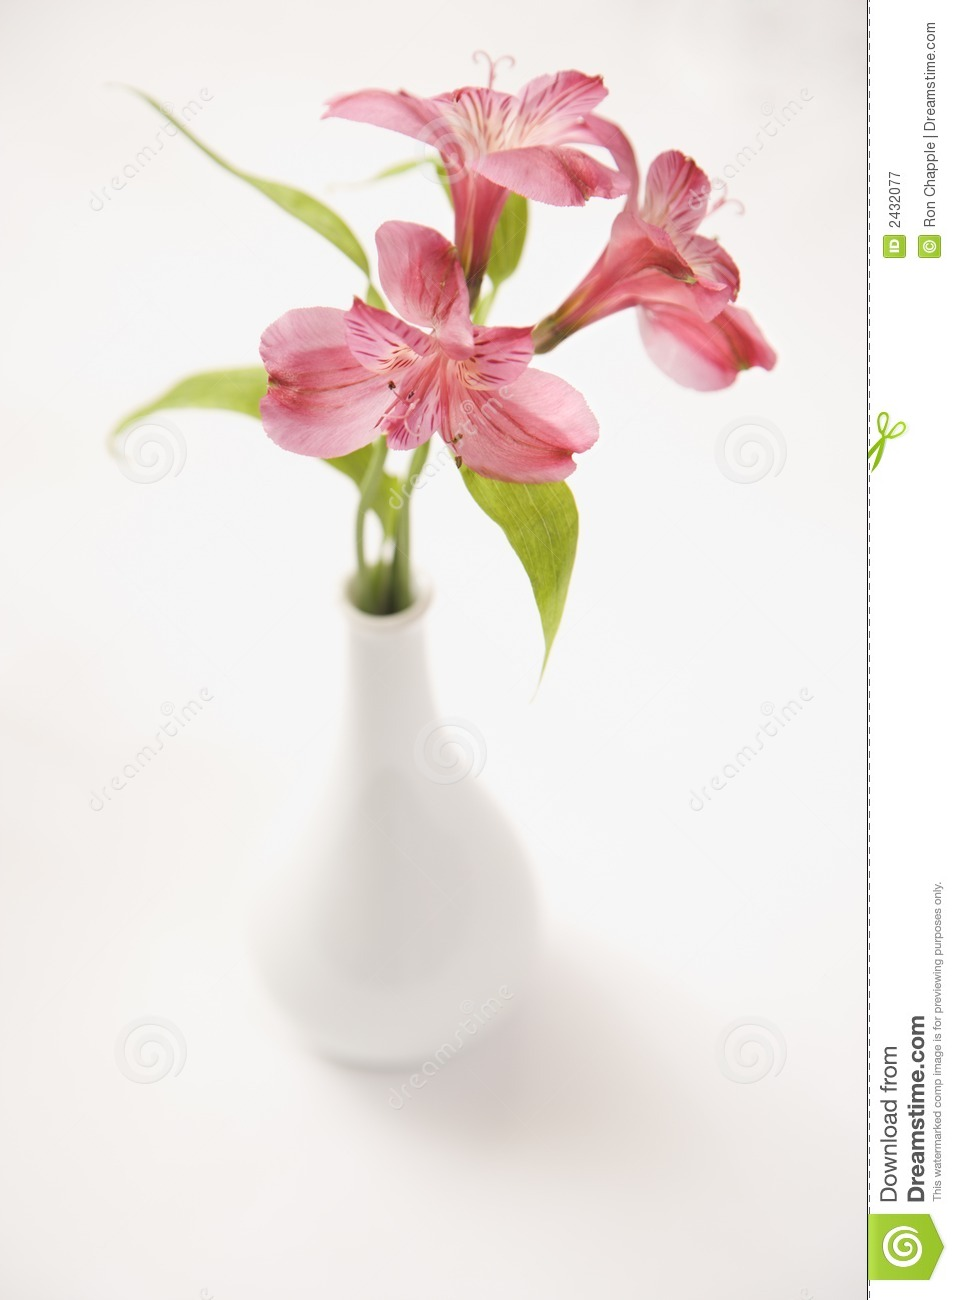 Royalty-Free Stock Photo. Download Pink Flowers In Vase.